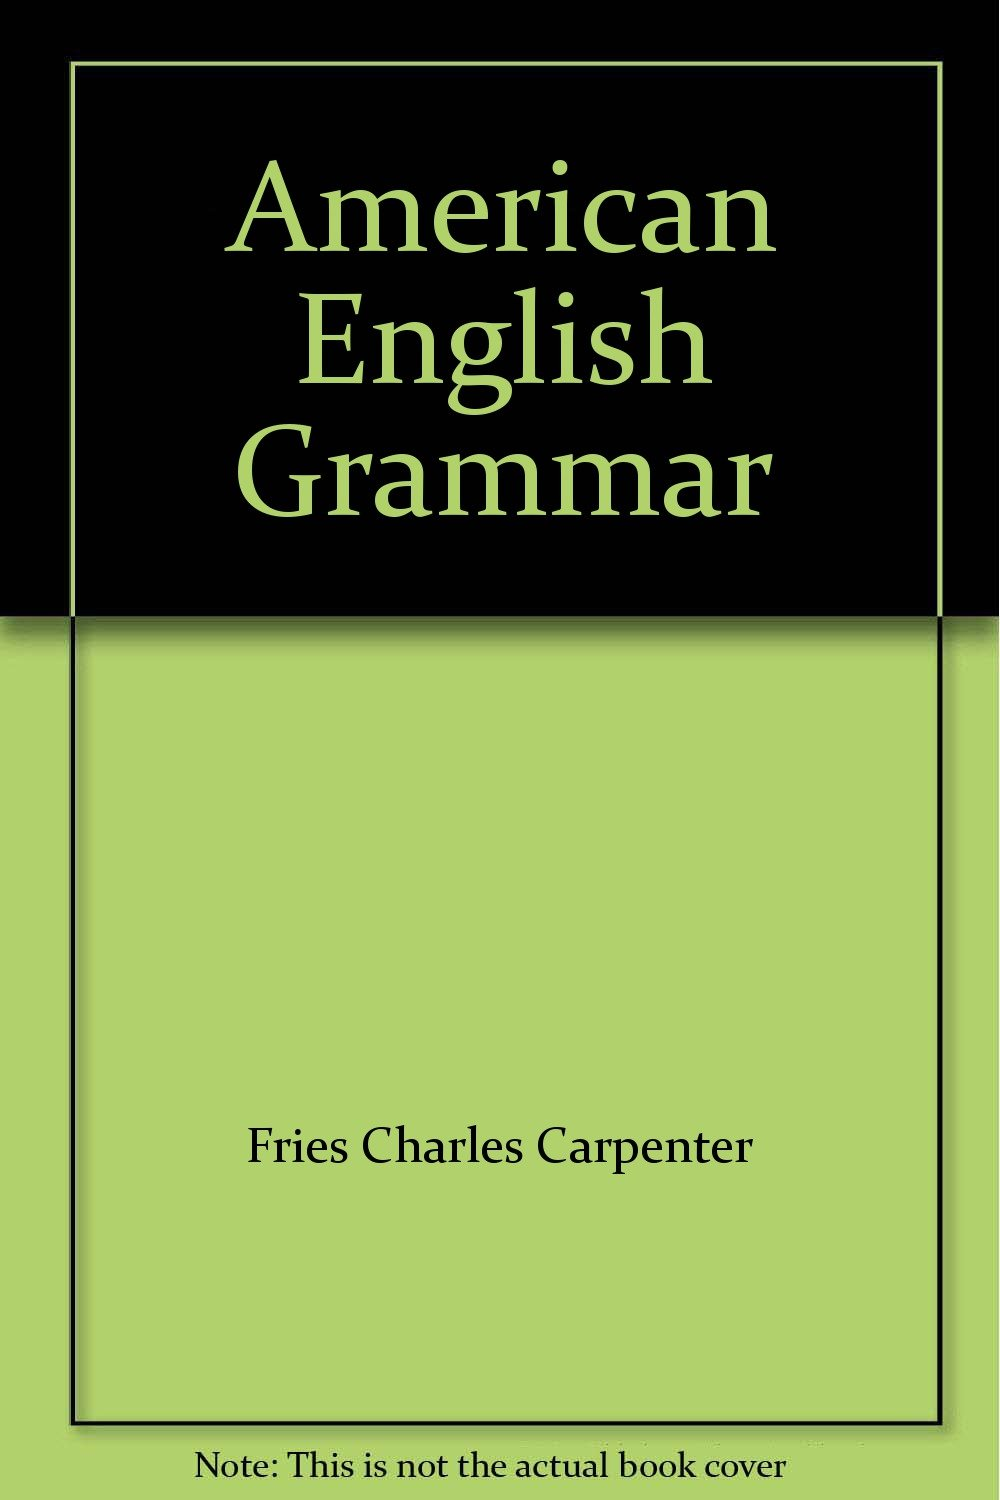 American English Grammar Fries Charles Carpenter Amazon Com Books